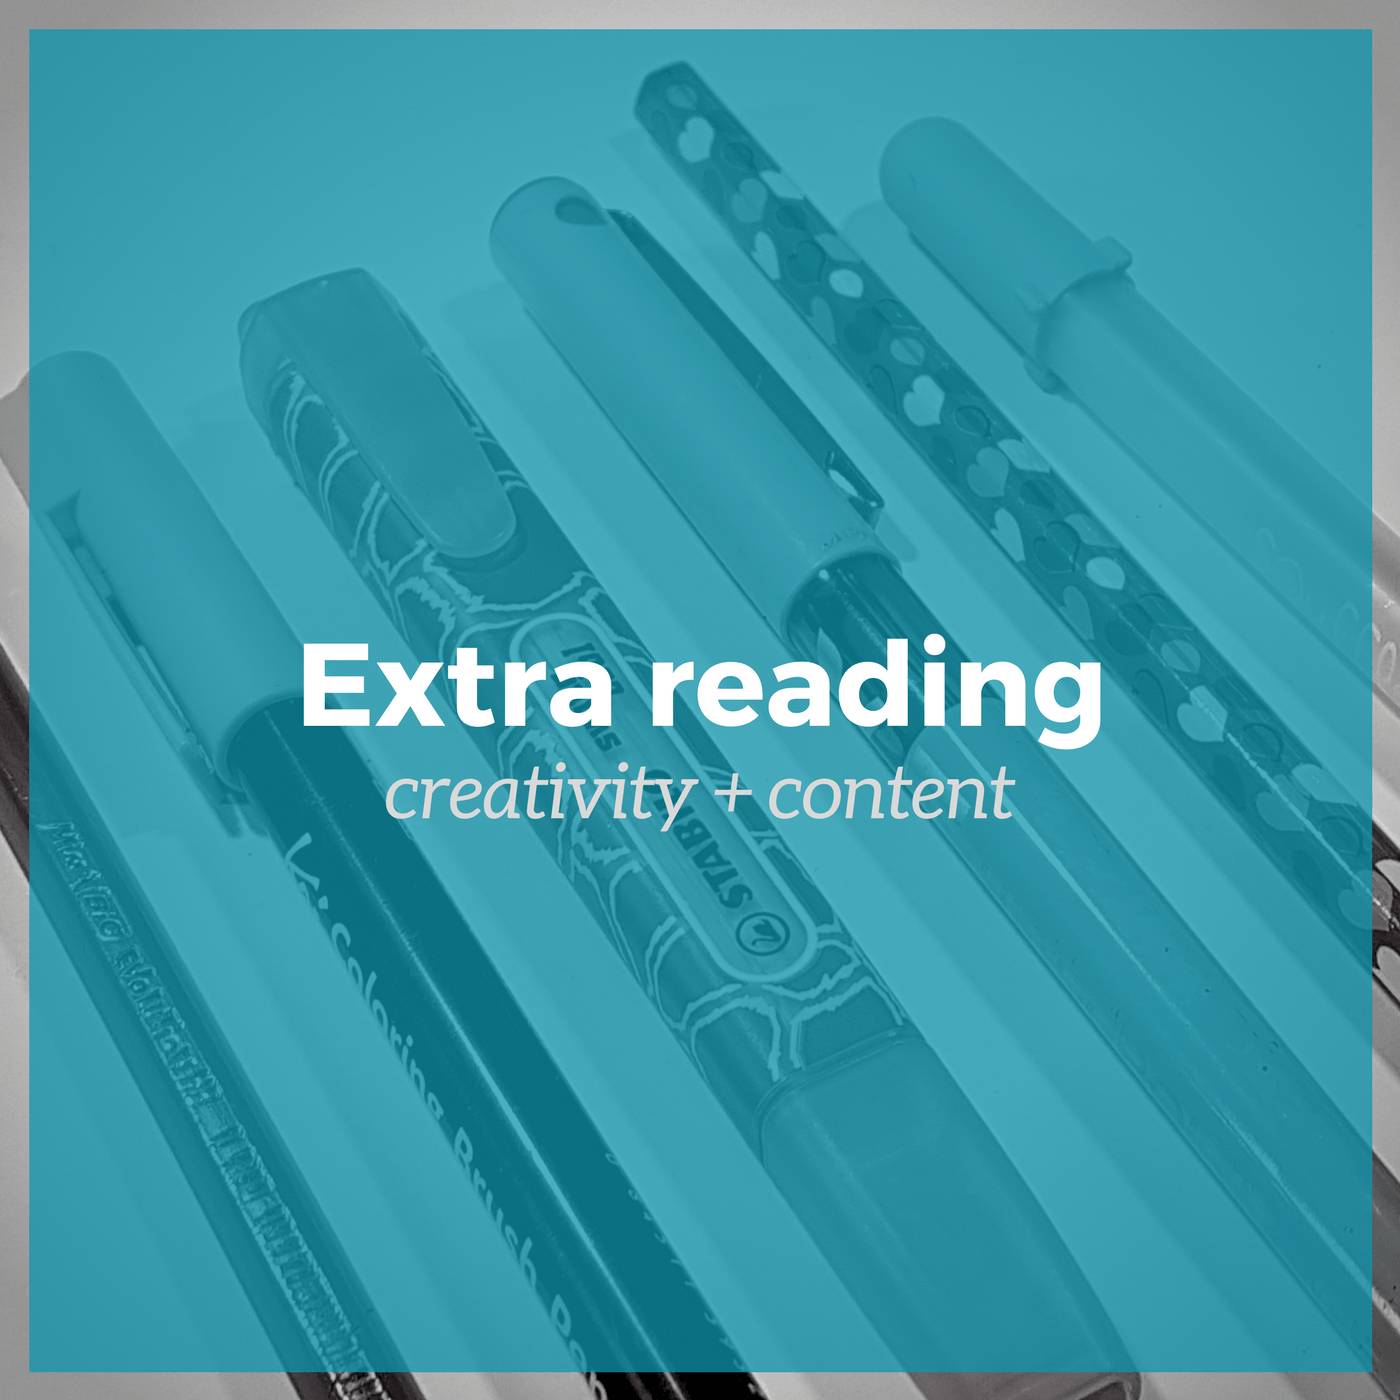 Extra reading - creativity + content